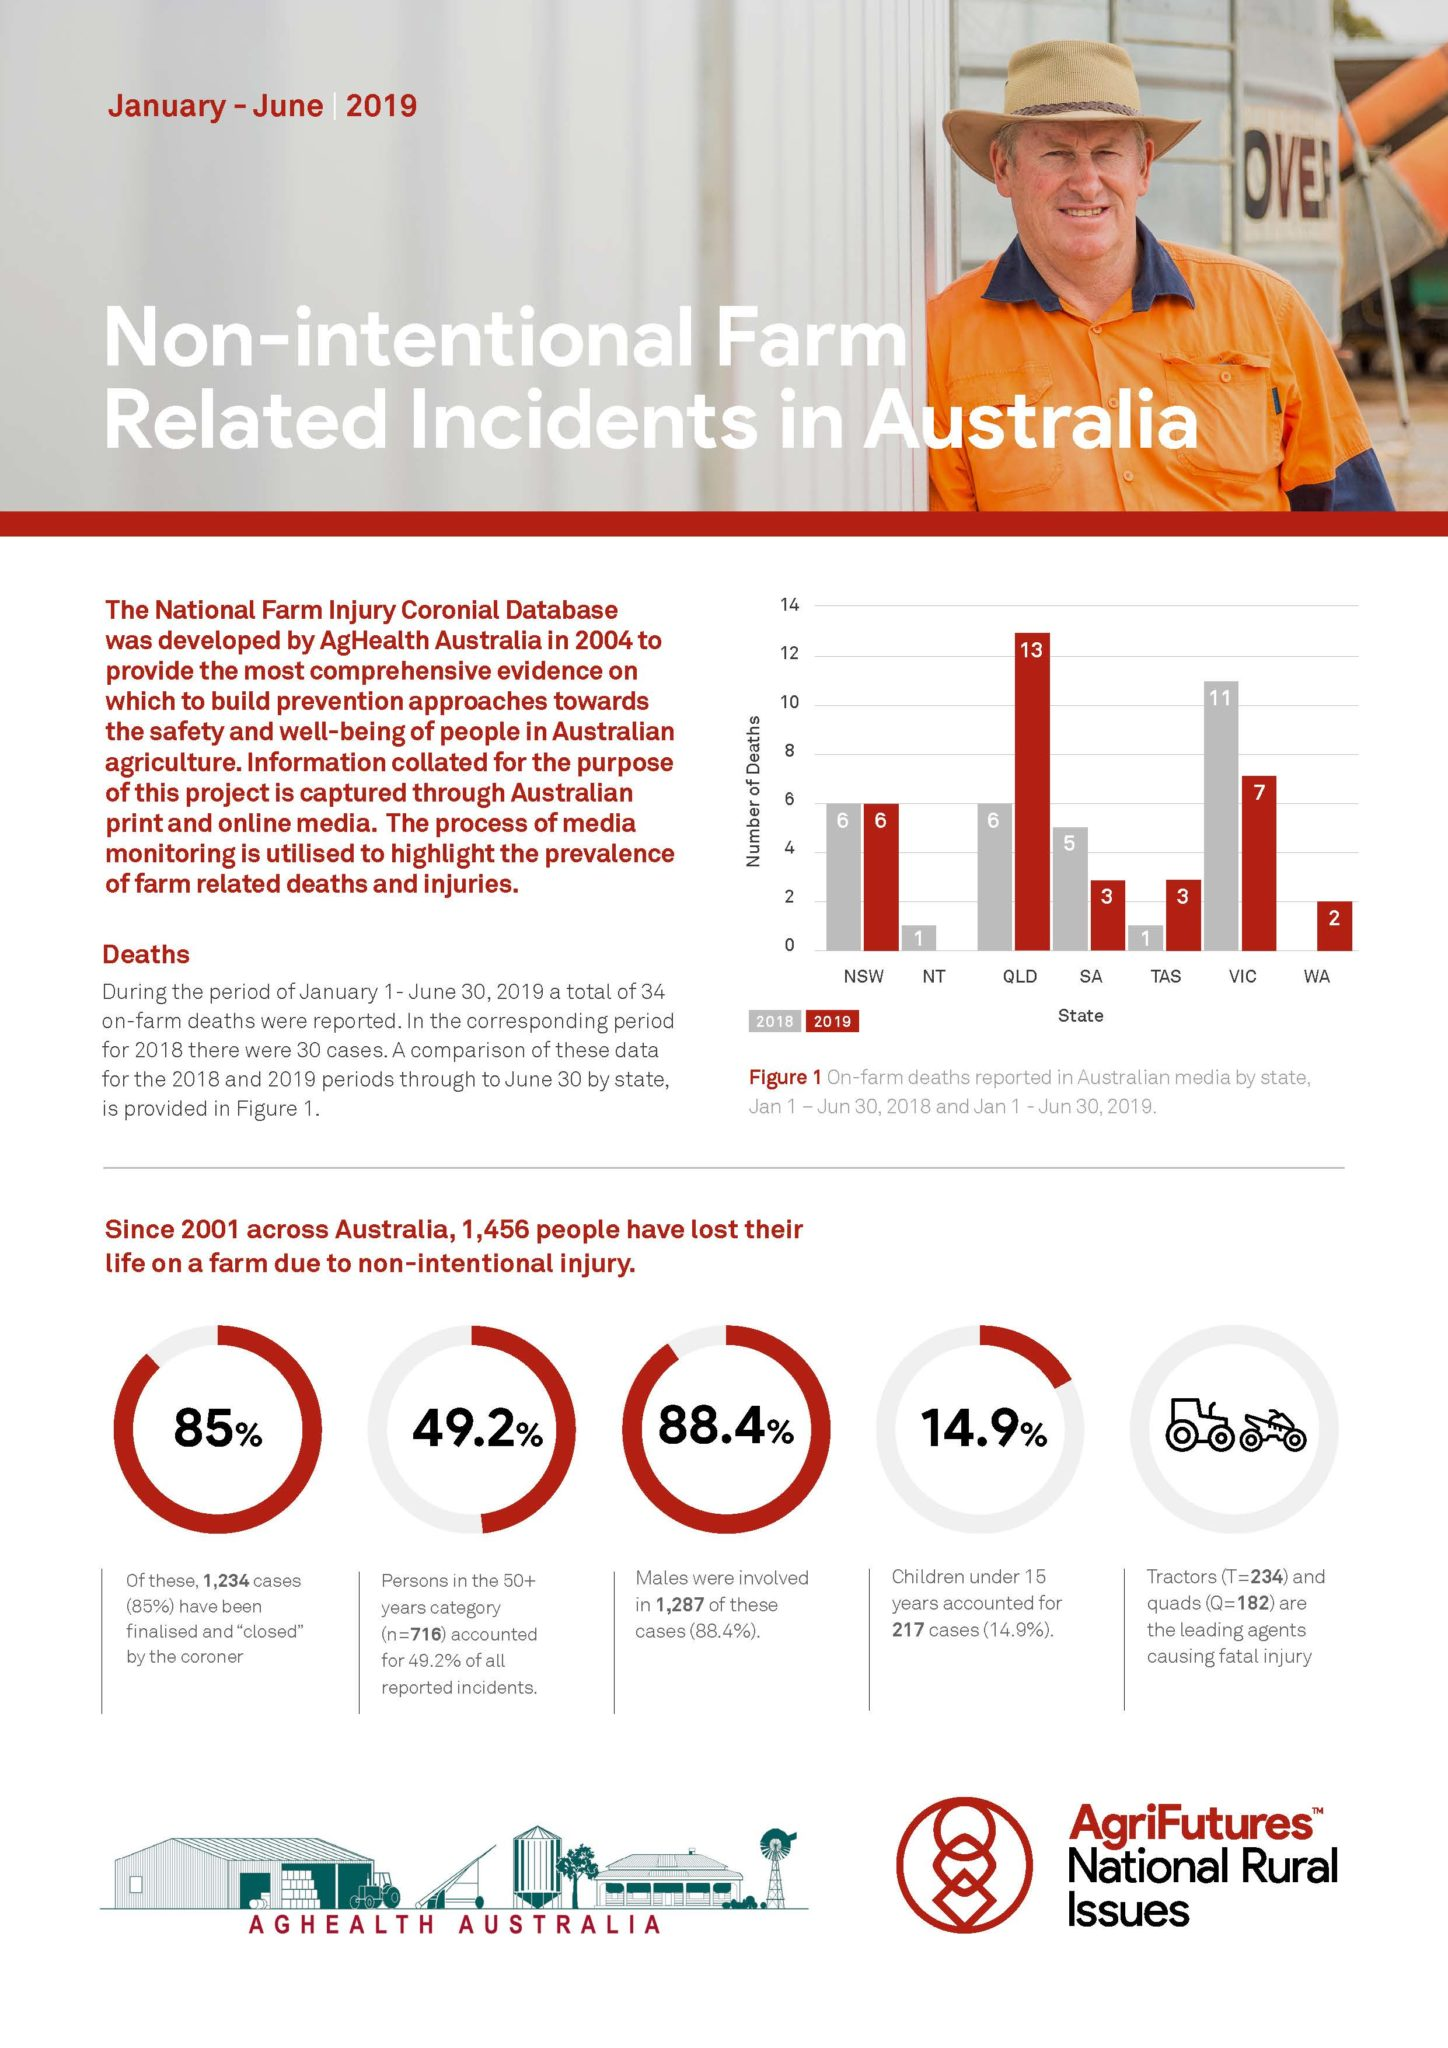 Non-intentional Farm Related Incidents in Australia 2019 mid-year report - image